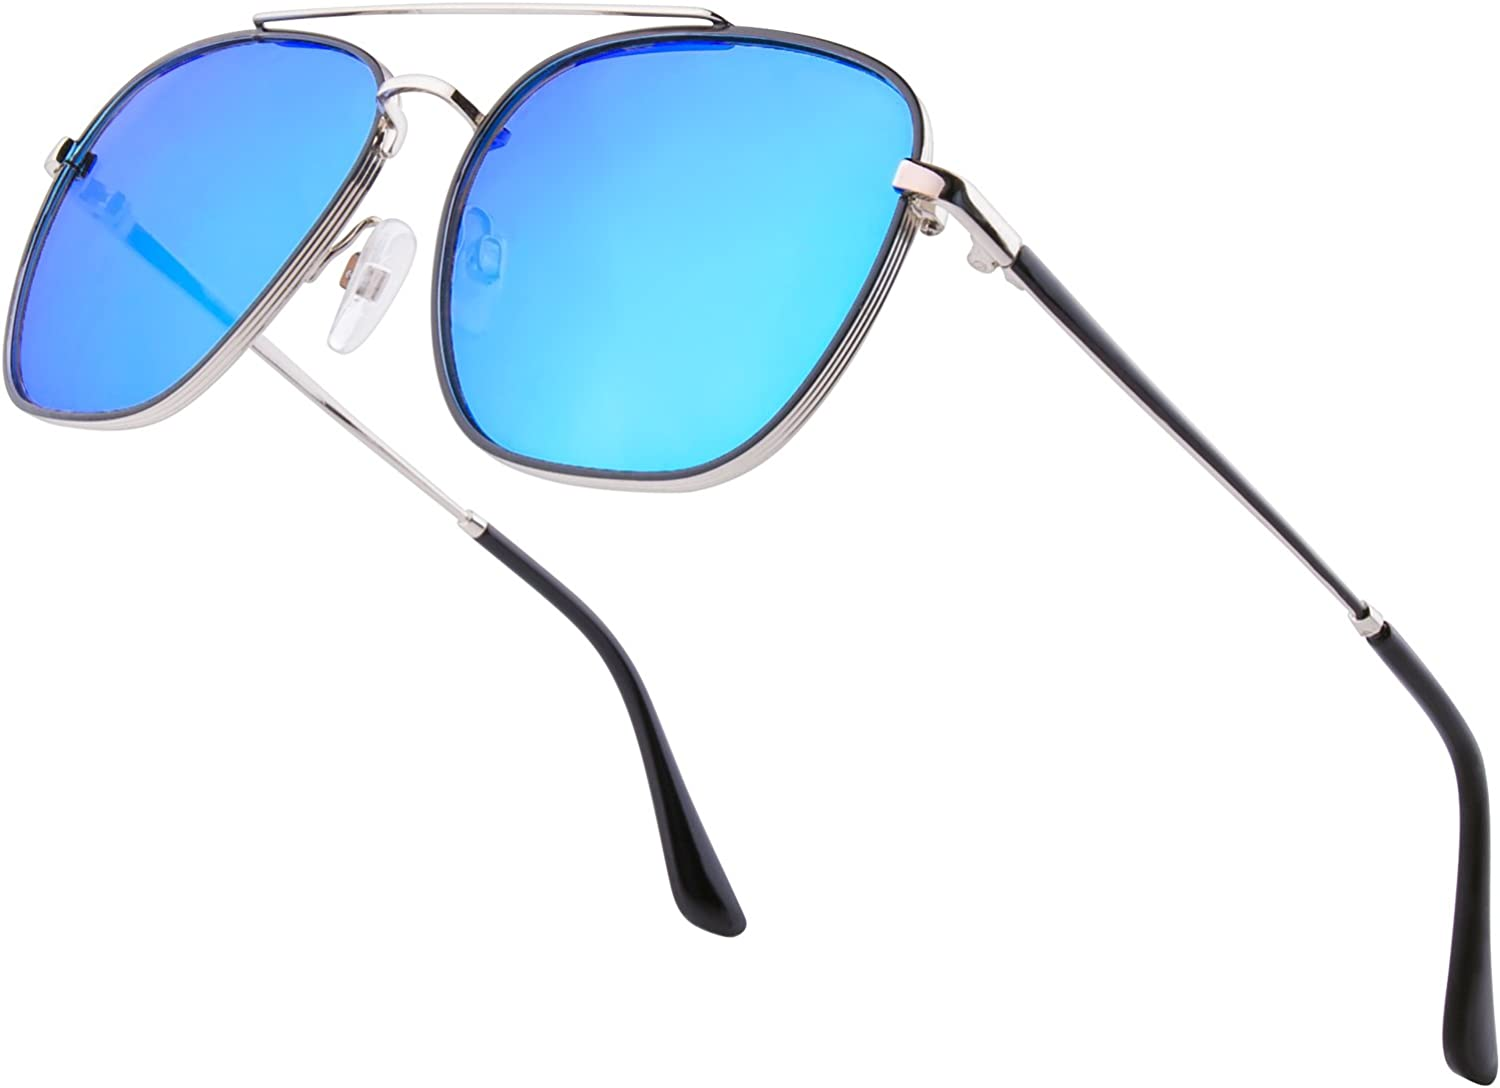 LUXEAR Sunglasses for Men Women Polarized UV 400 Protection Fash